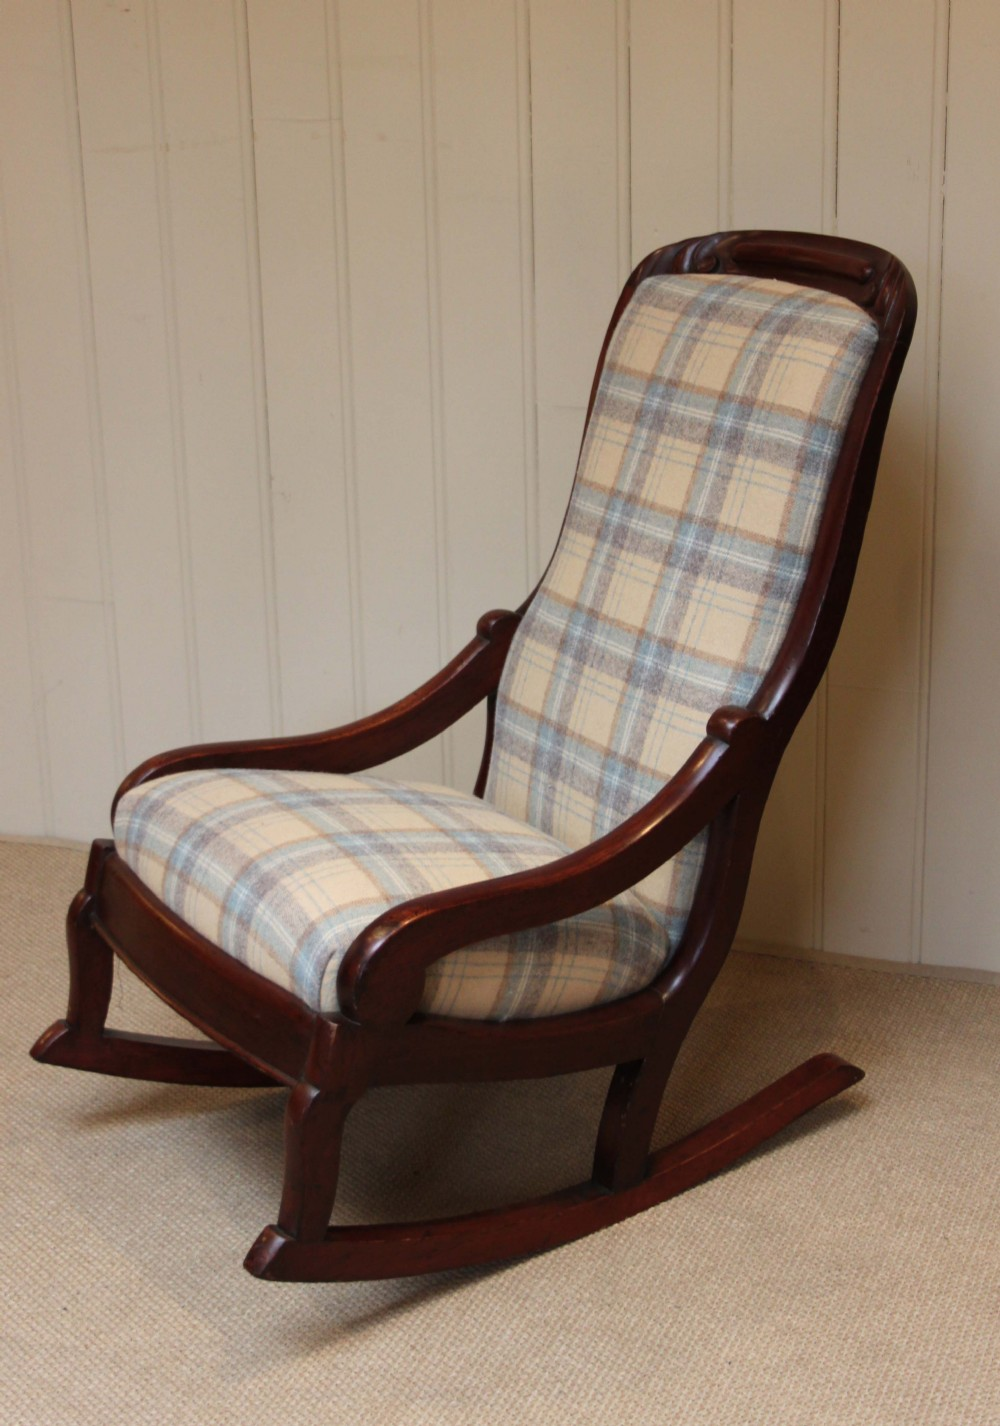 ... victorian chairs antique upholstered chairs antique rocking chairs